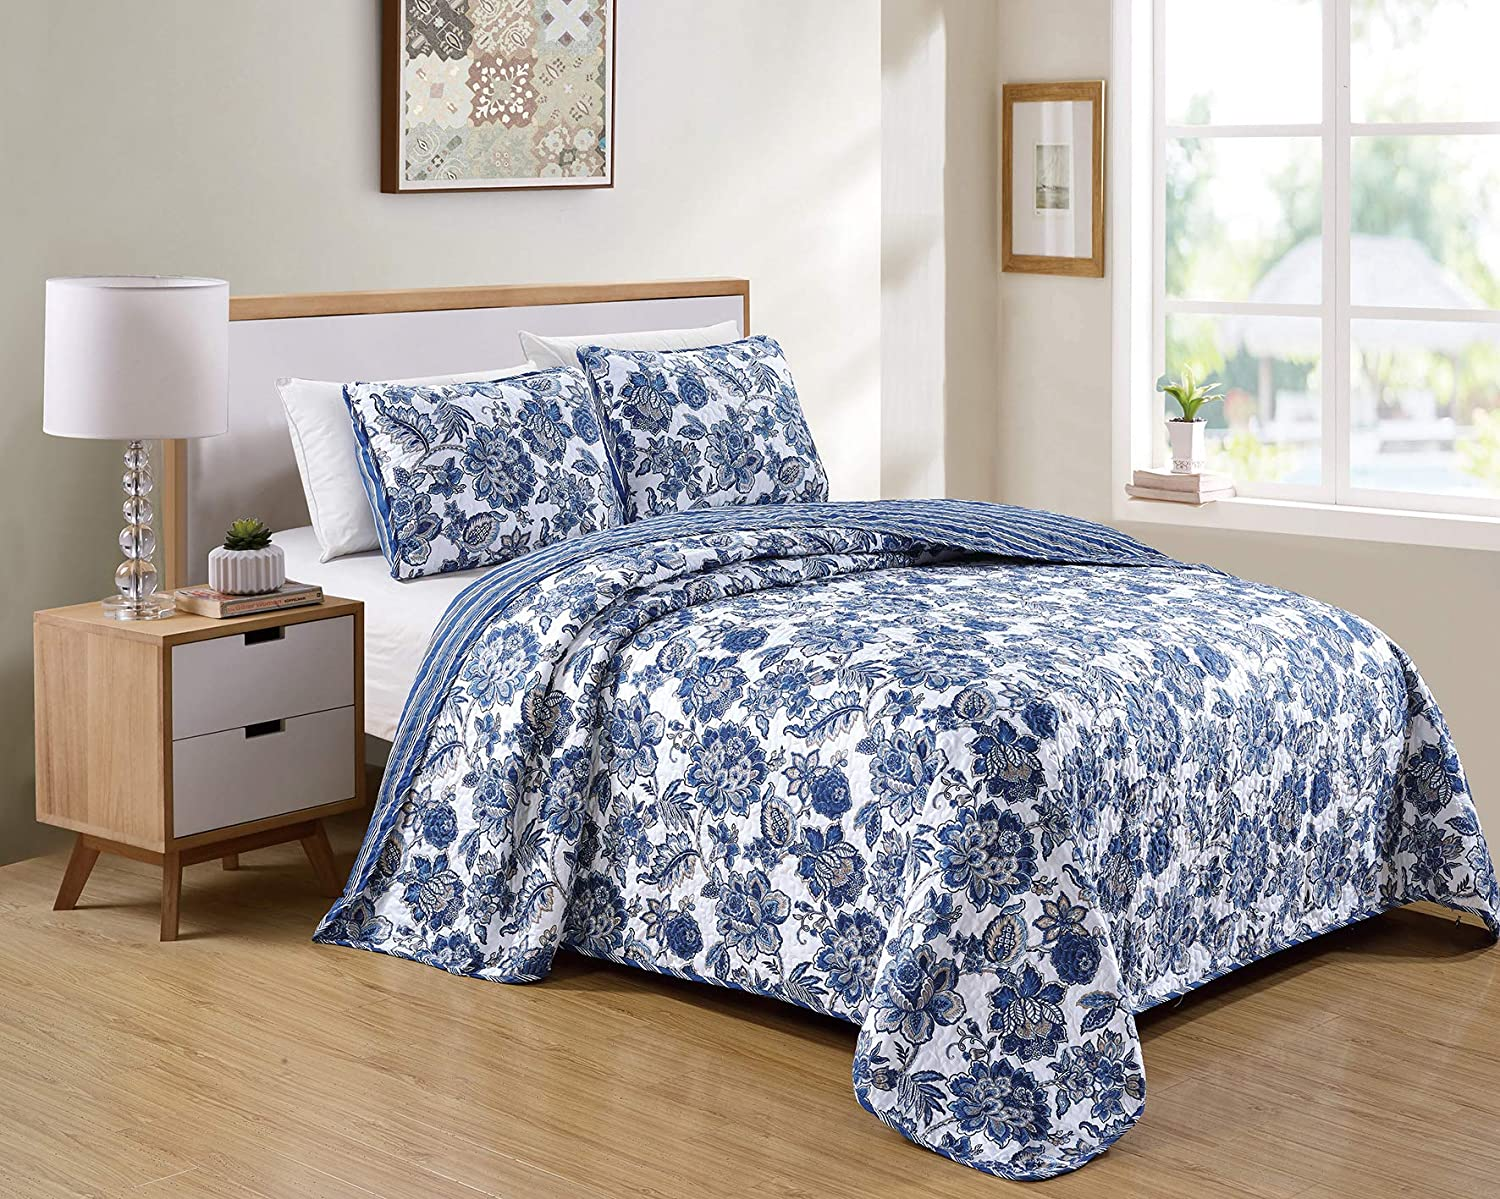 Better Home Style 3 Piece Blue White Taupe Floral Luxury Lush Soft Flowers Reversible Quilt Coverlet Bedspread Oversized Bed Cover Set # 12096 (Full/Queen)